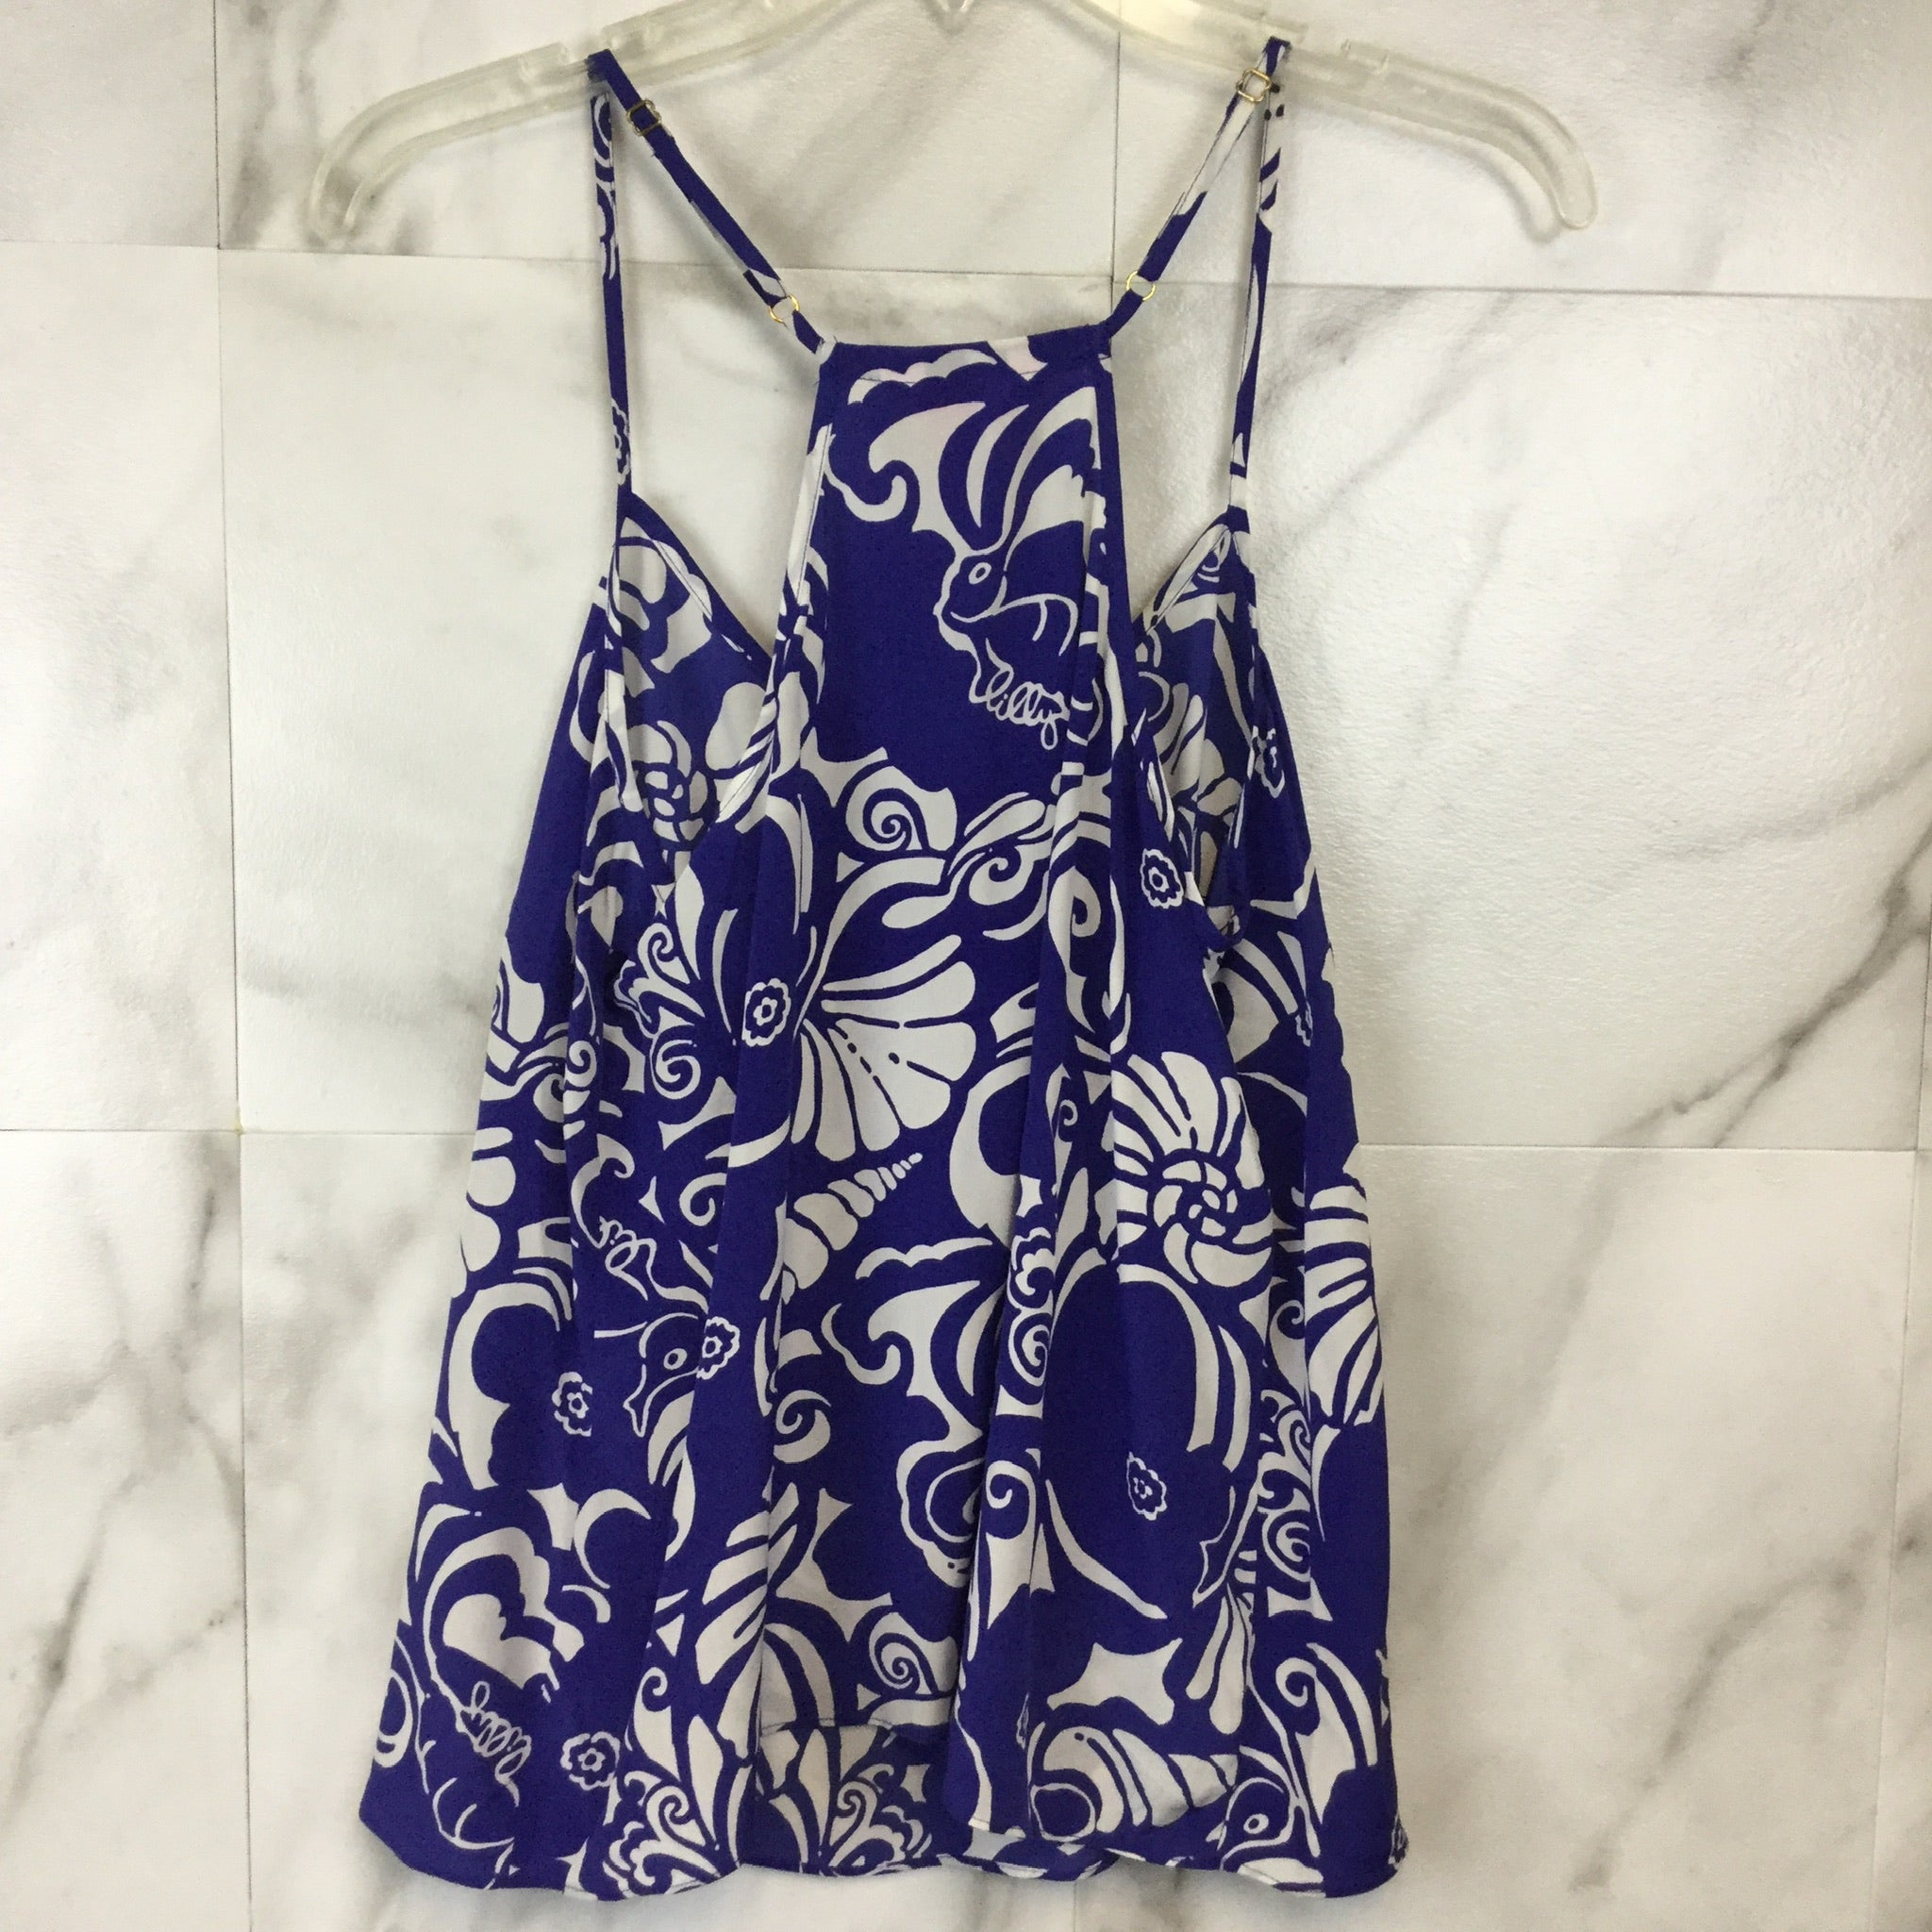 Lilly Pulitzer Dusk Top - size M